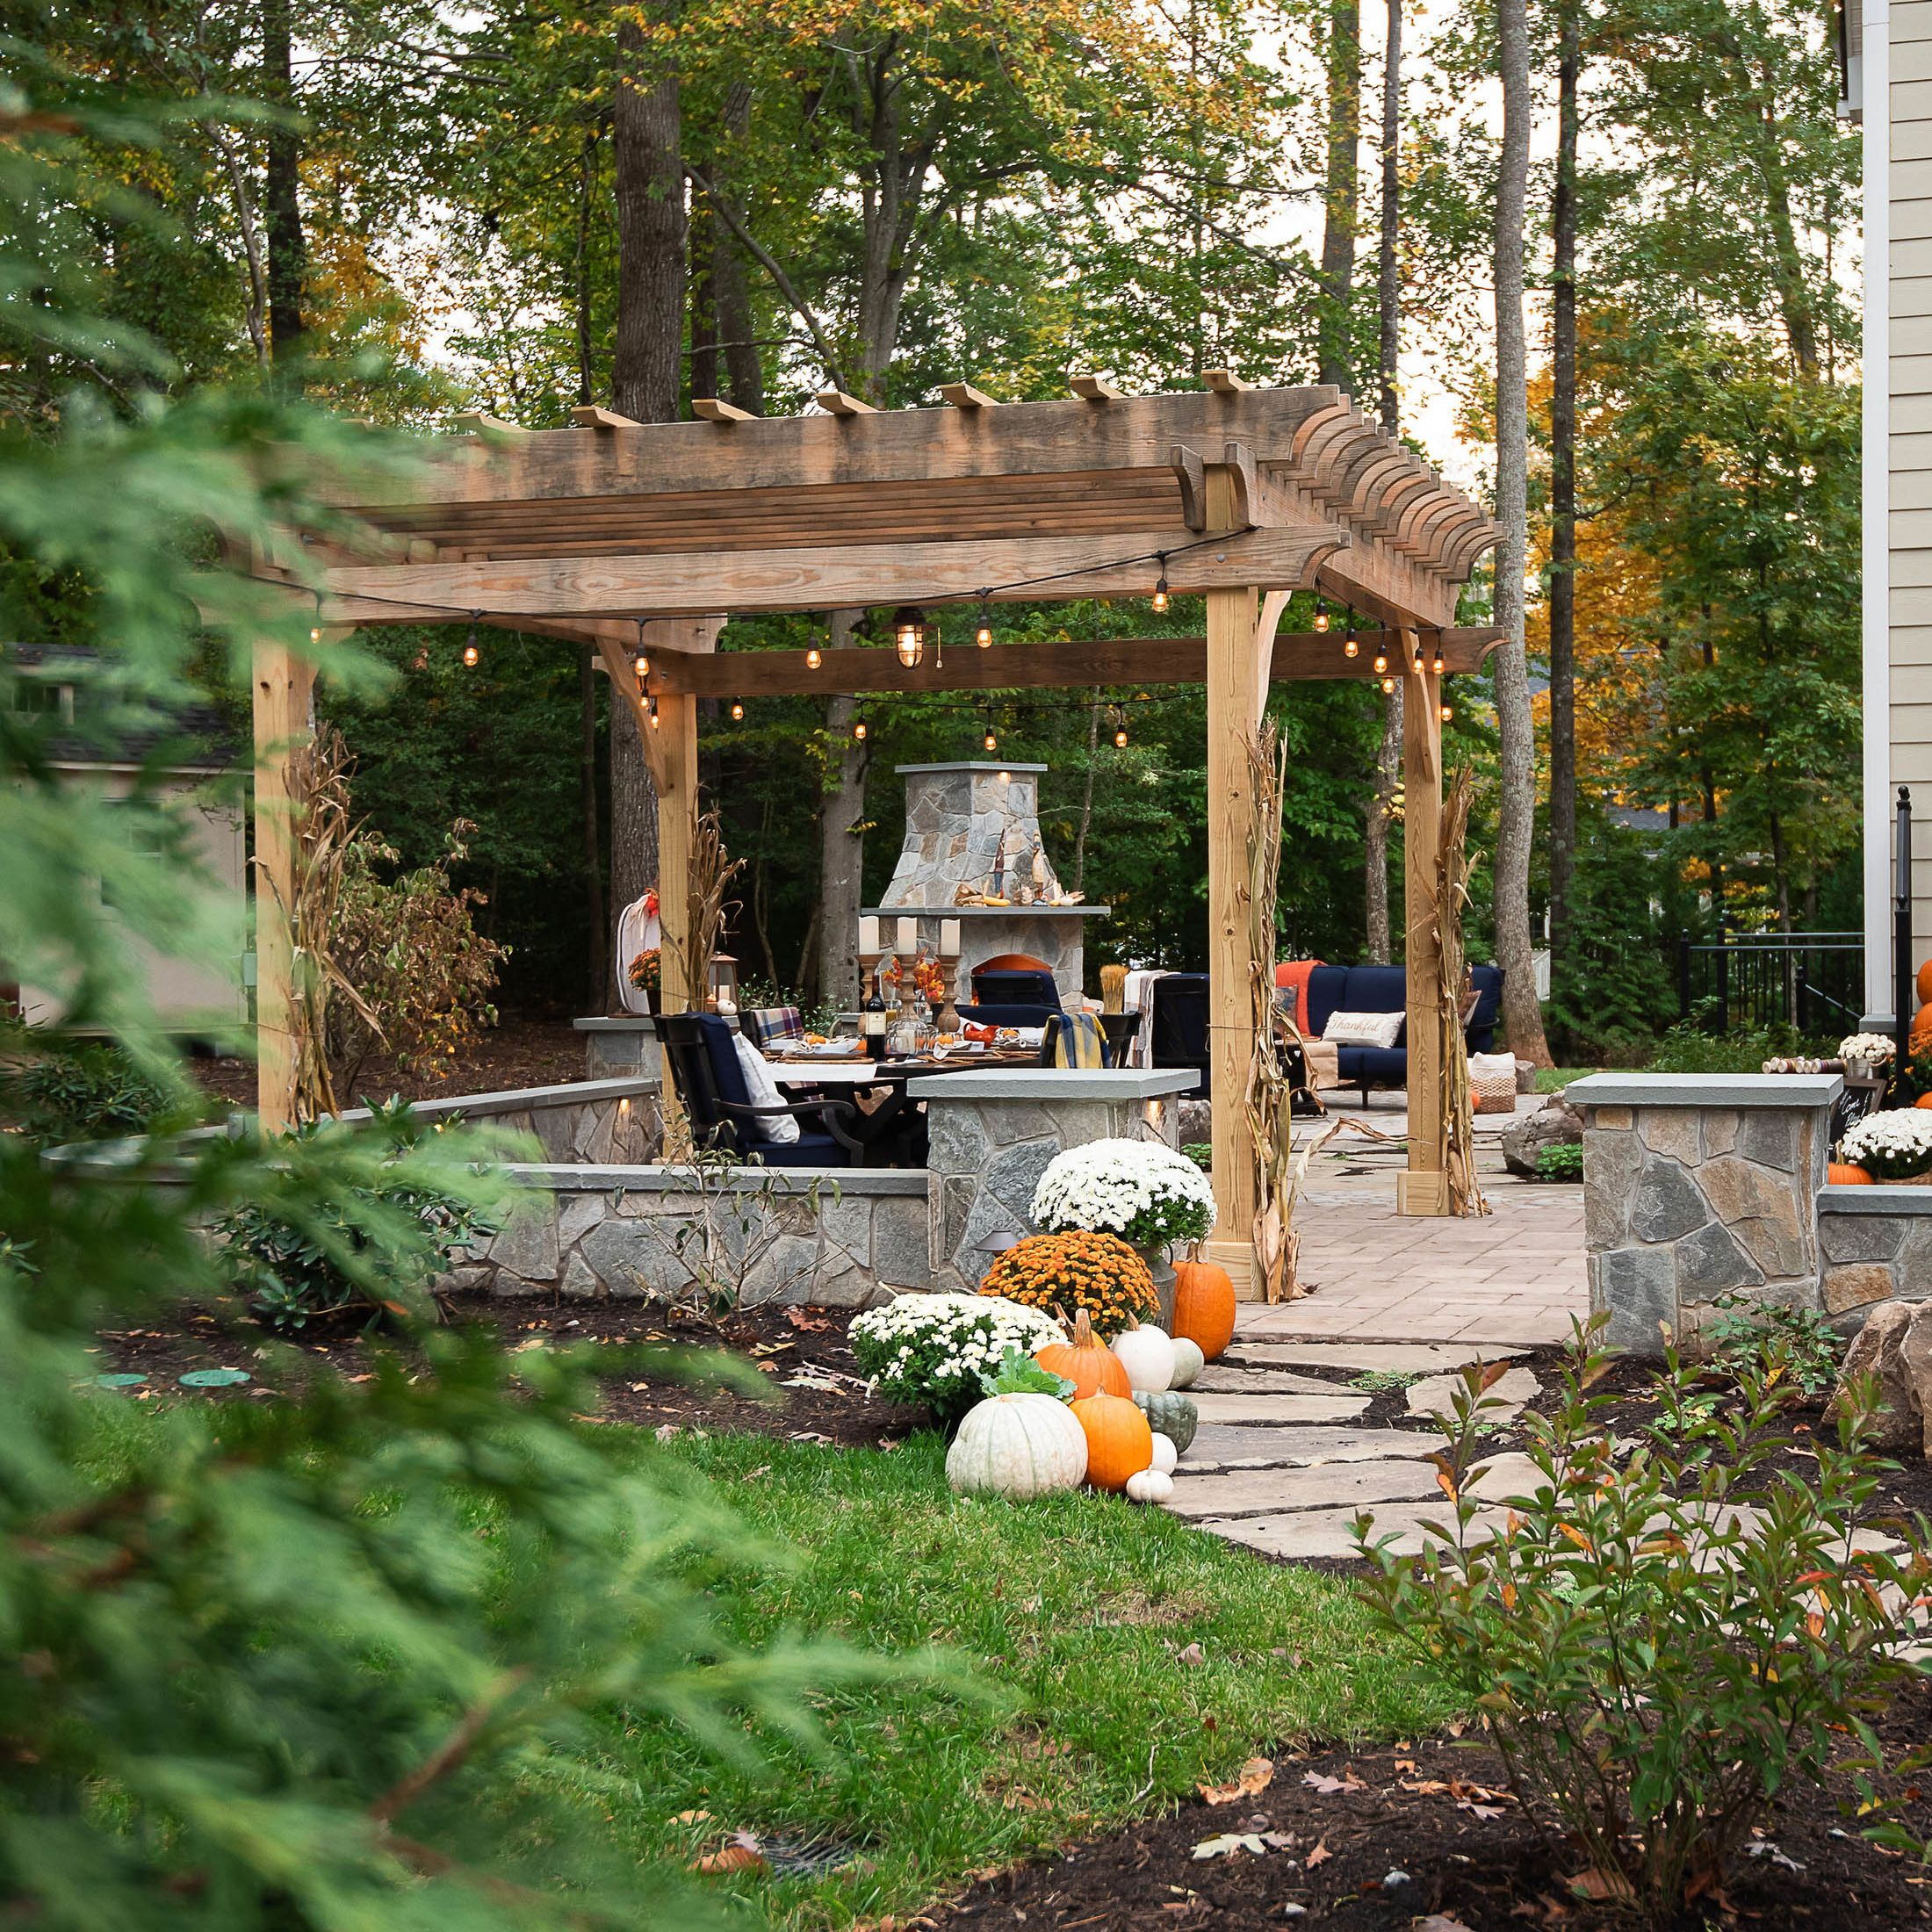 A Backyard to be Thankful For